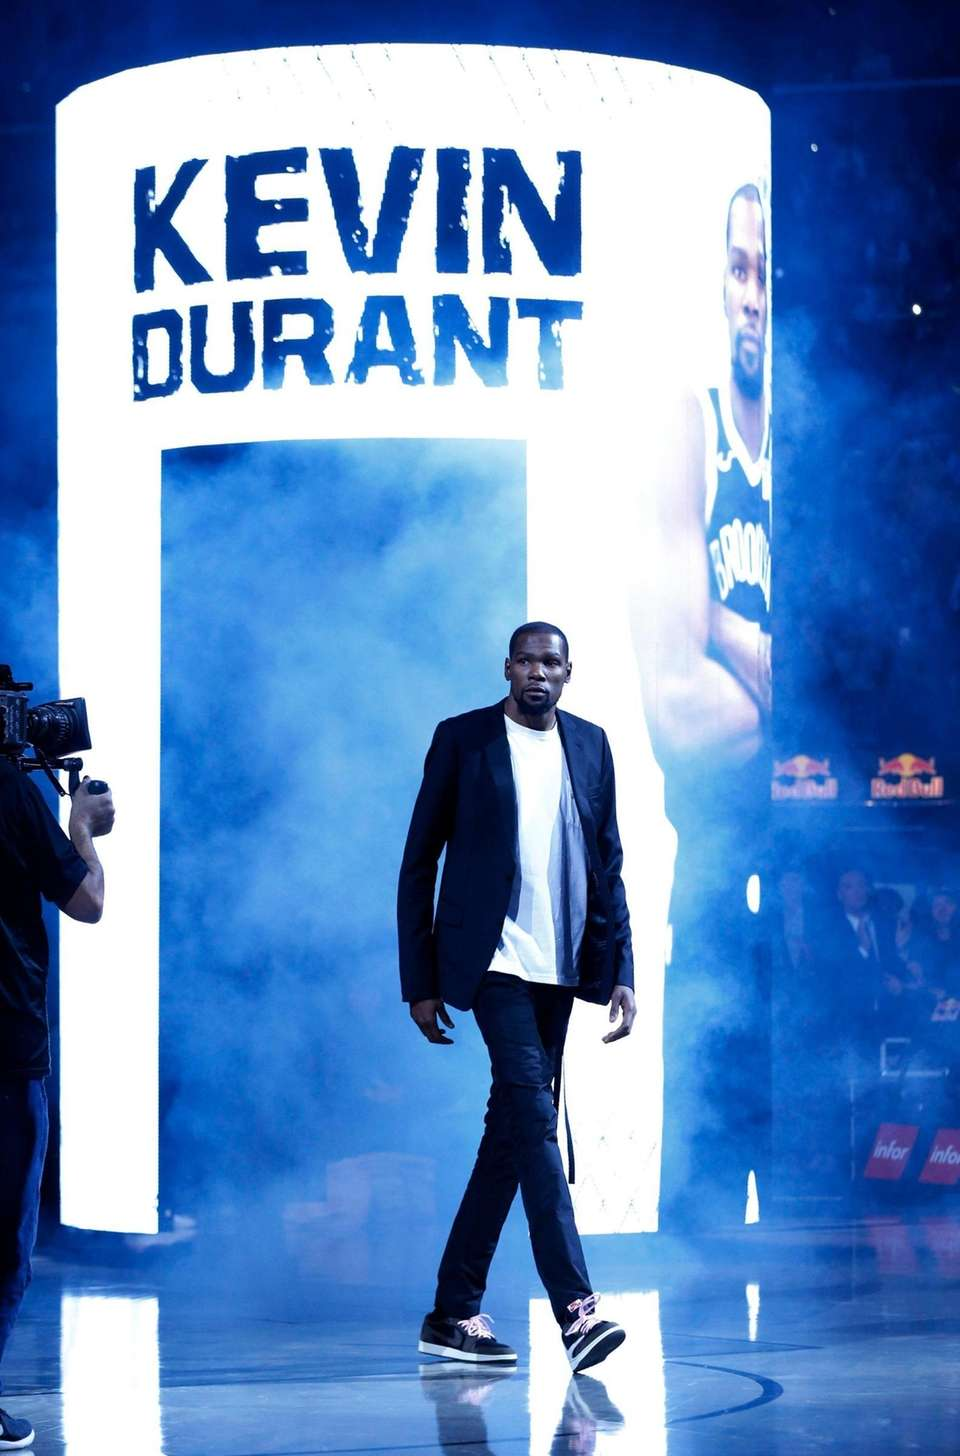 Kevin Durant #7 of the Brooklyn Nets is